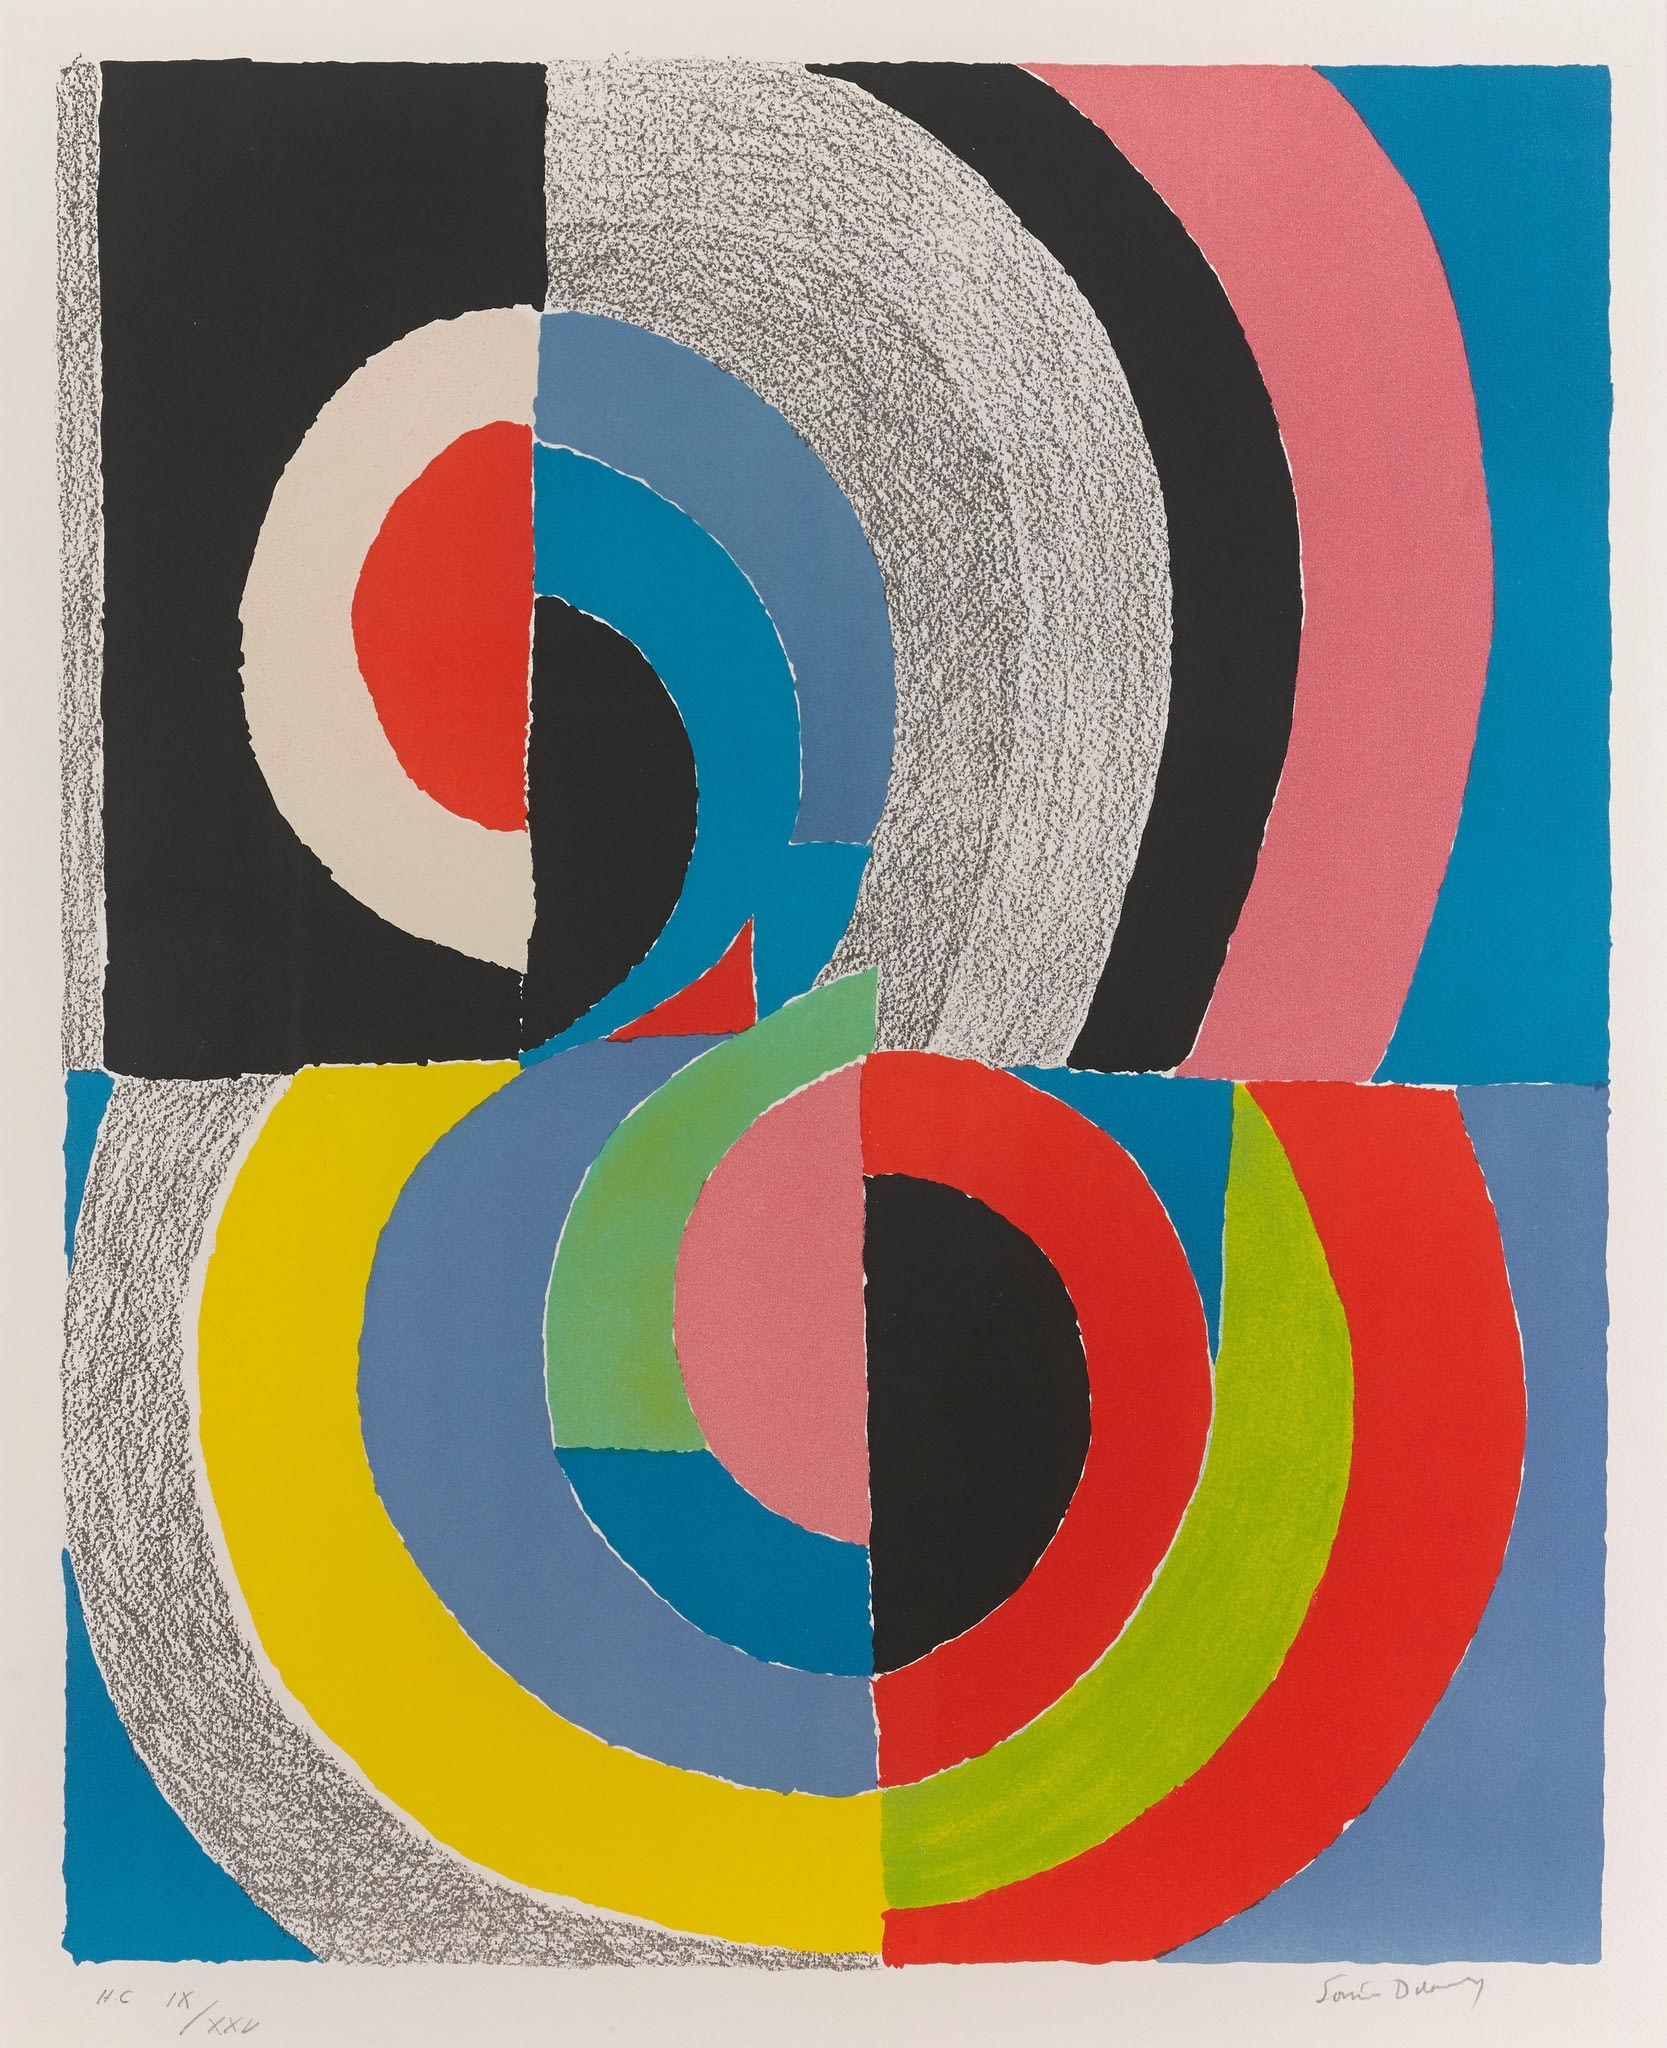 """<span class=""""link fancybox-details-link""""><a href=""""/artists/39-sonia-delaunay/works/146-sonia-delaunay-plougastel-1970/"""">View Detail Page</a></span><div class=""""artist""""><strong>Sonia Delaunay</strong></div> 1885 - 1979 <div class=""""title""""><em>Plougastel</em>, 1970</div> <div class=""""signed_and_dated"""">signed in pencil, numbered H.C IX/XXV, a hors commerce impression, aside from the edition of 75, published by Galerie de Varenne, Paris, with wide margins, in very good condition.</div> <div class=""""medium"""">Lithograph in colours</div> <div class=""""dimensions"""">Sheet:<br />29 7/8 x 22 1/8 in<br />76 x 56 cm</div>"""